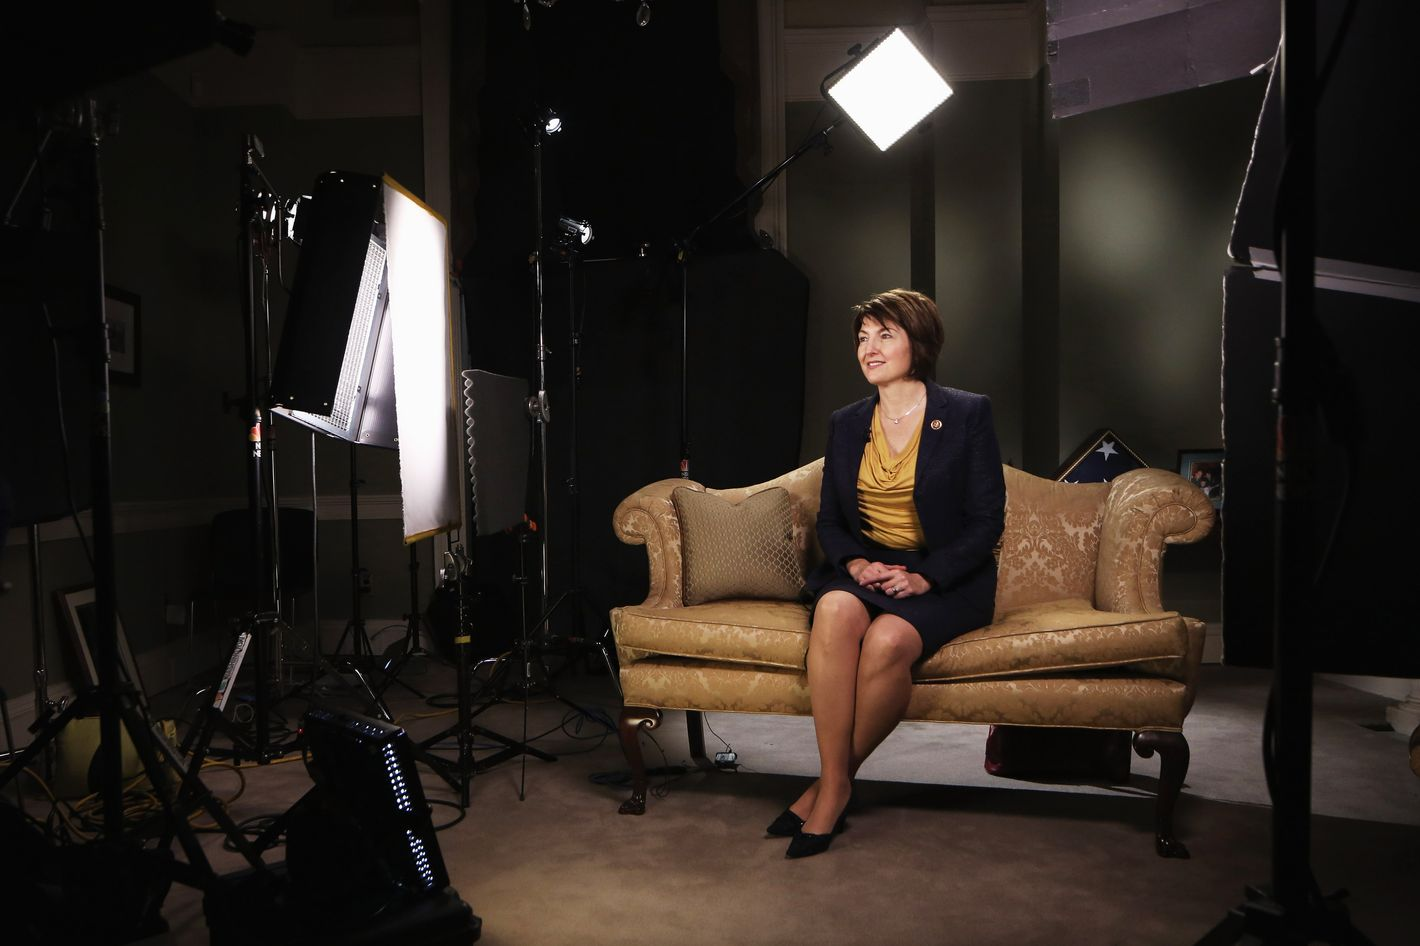 U.S. Rep. Cathy McMorris Rodgers (R-WA) sits on a couch as she prepares for responding to President Barack Obama tonight's State of the Union address January 28, 2014 on Capitol Hill in Washington, DC. McMorris Rodgers, the chair of the House Republican Conference, was picked to deliver the response.